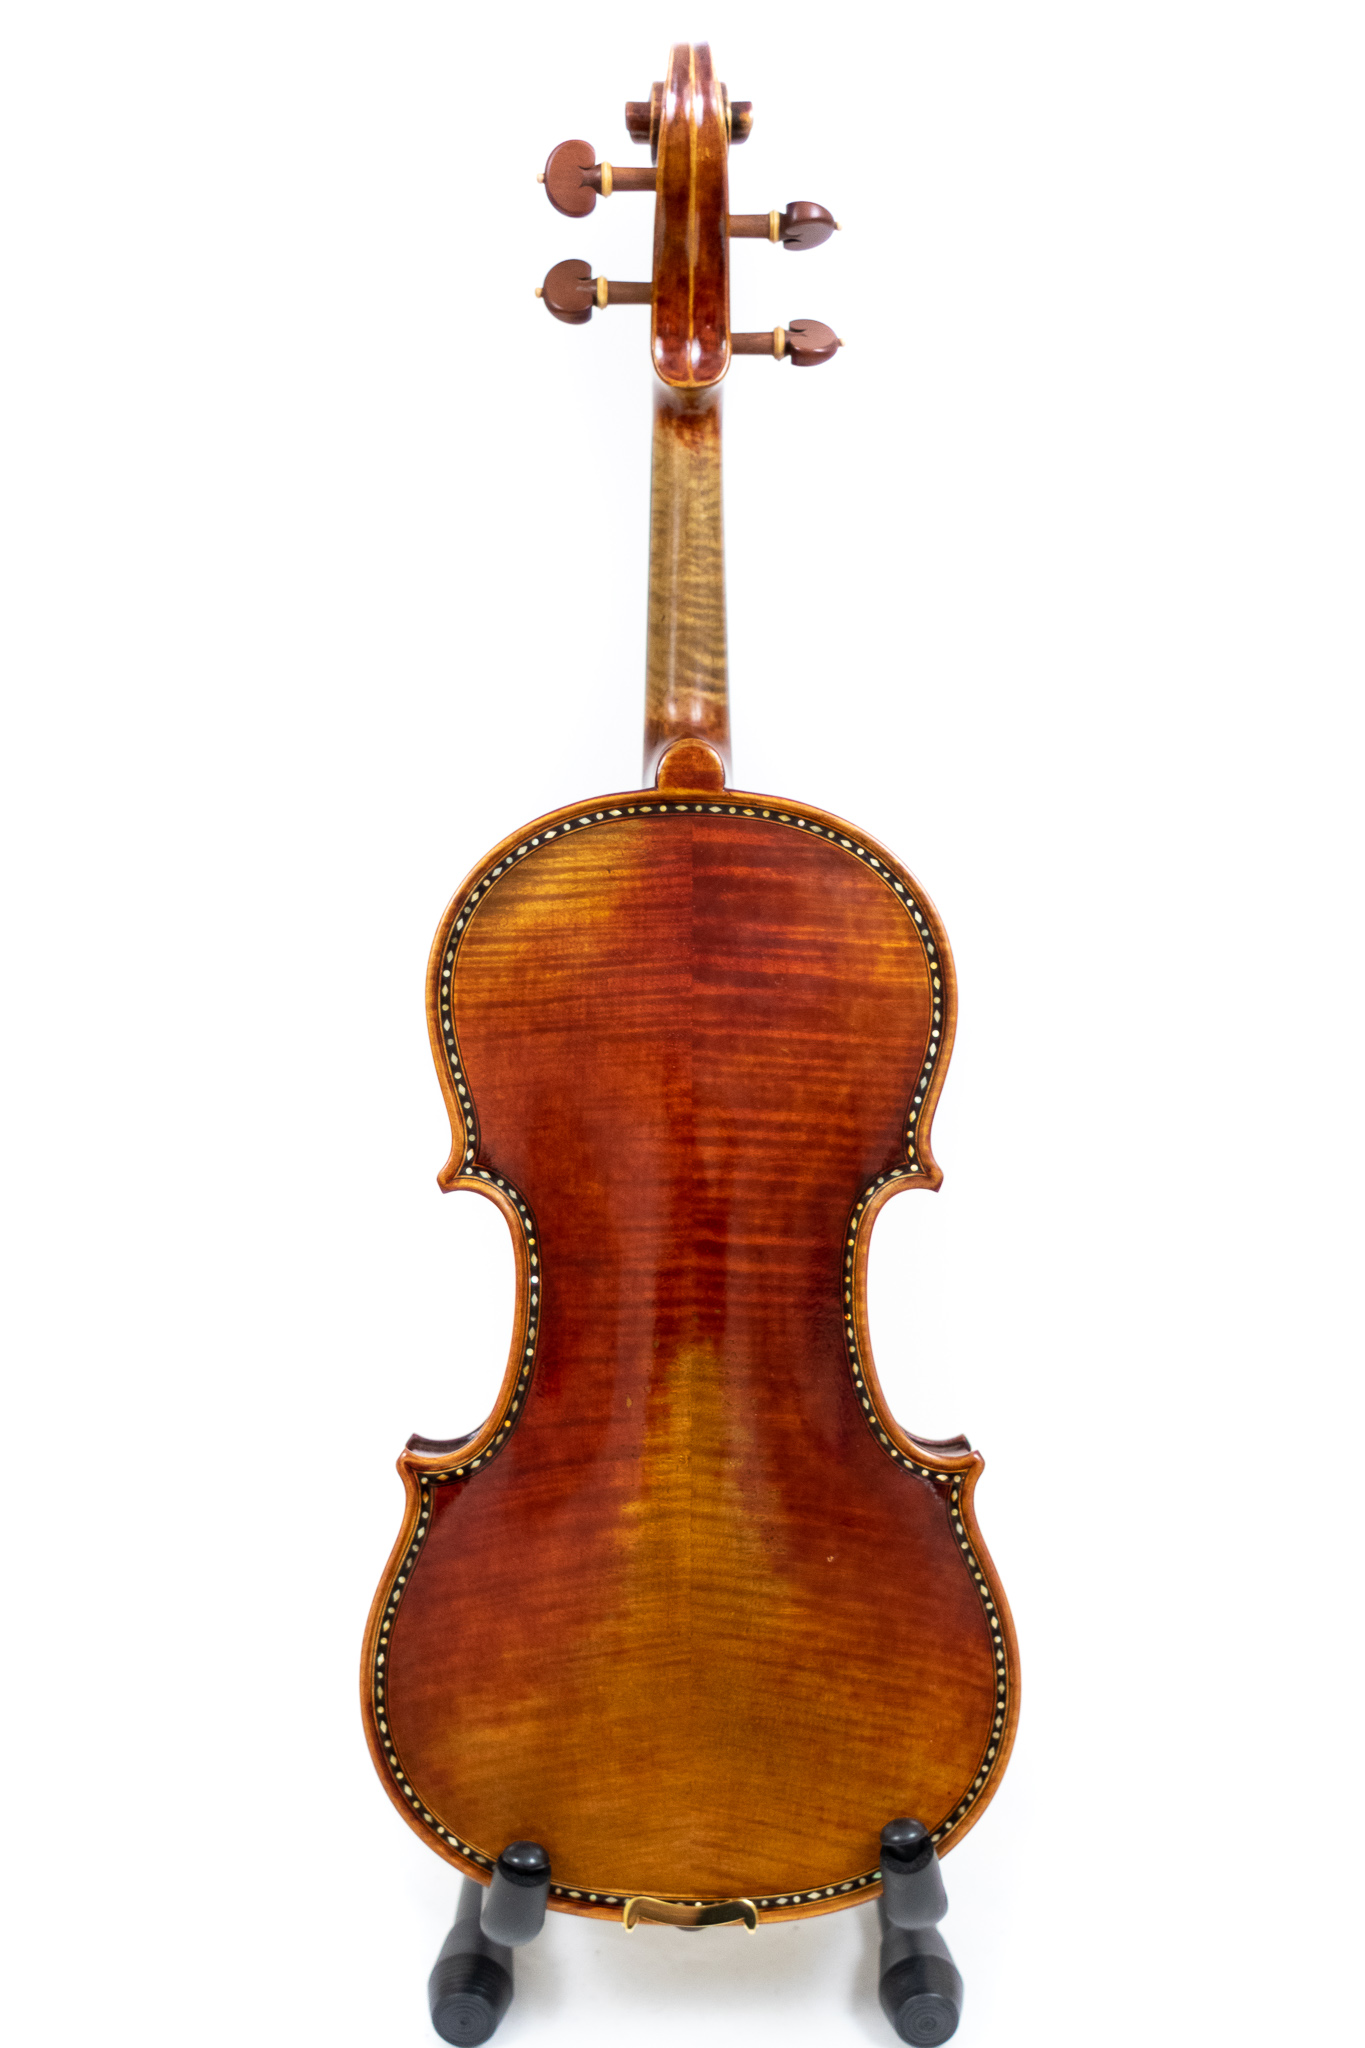 The back view of a finely crafted and ornamented master line violin